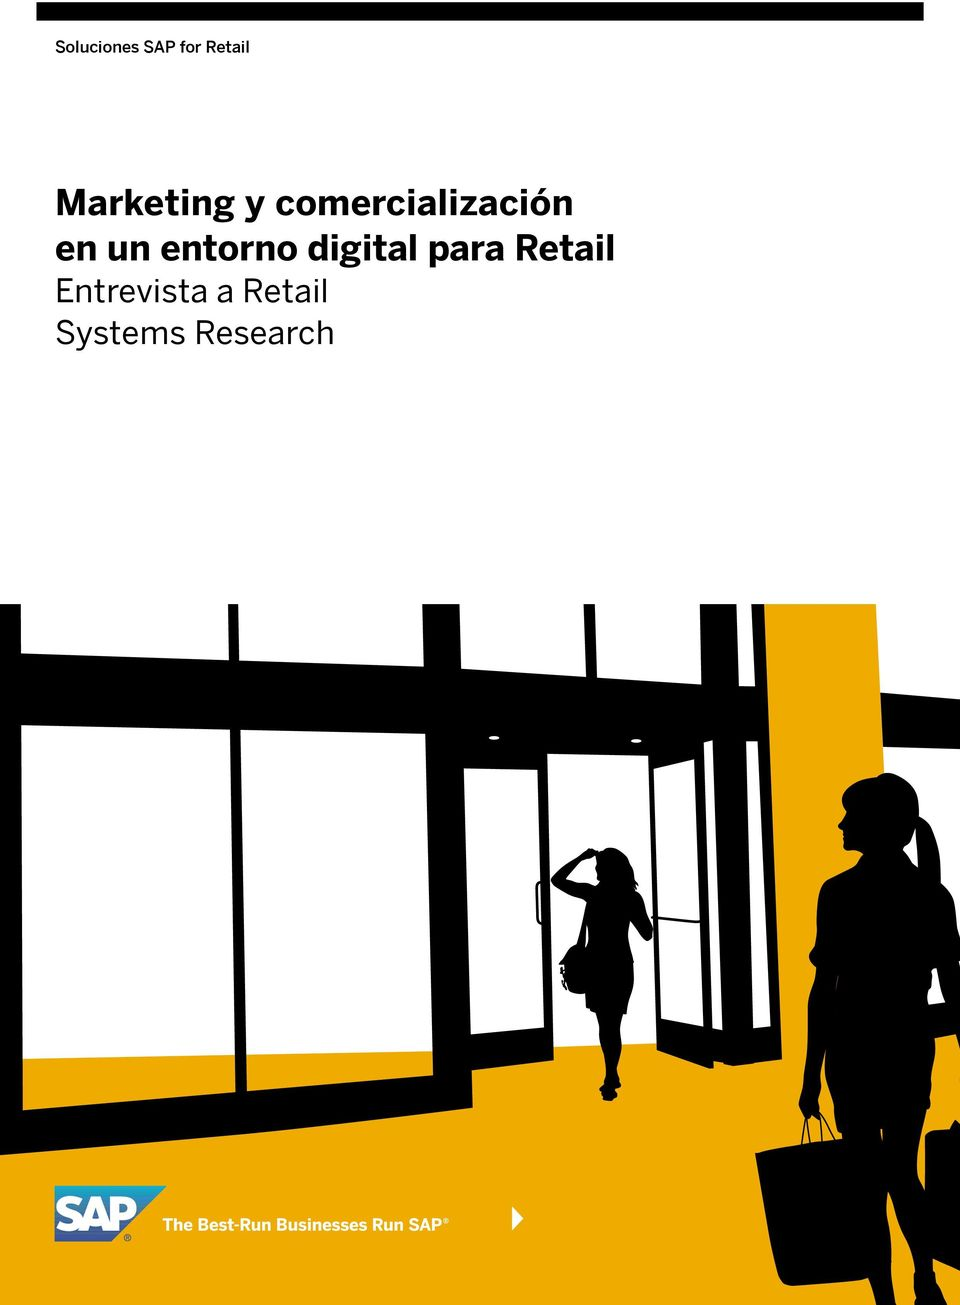 Retail Entrevista a Retail Systems Research